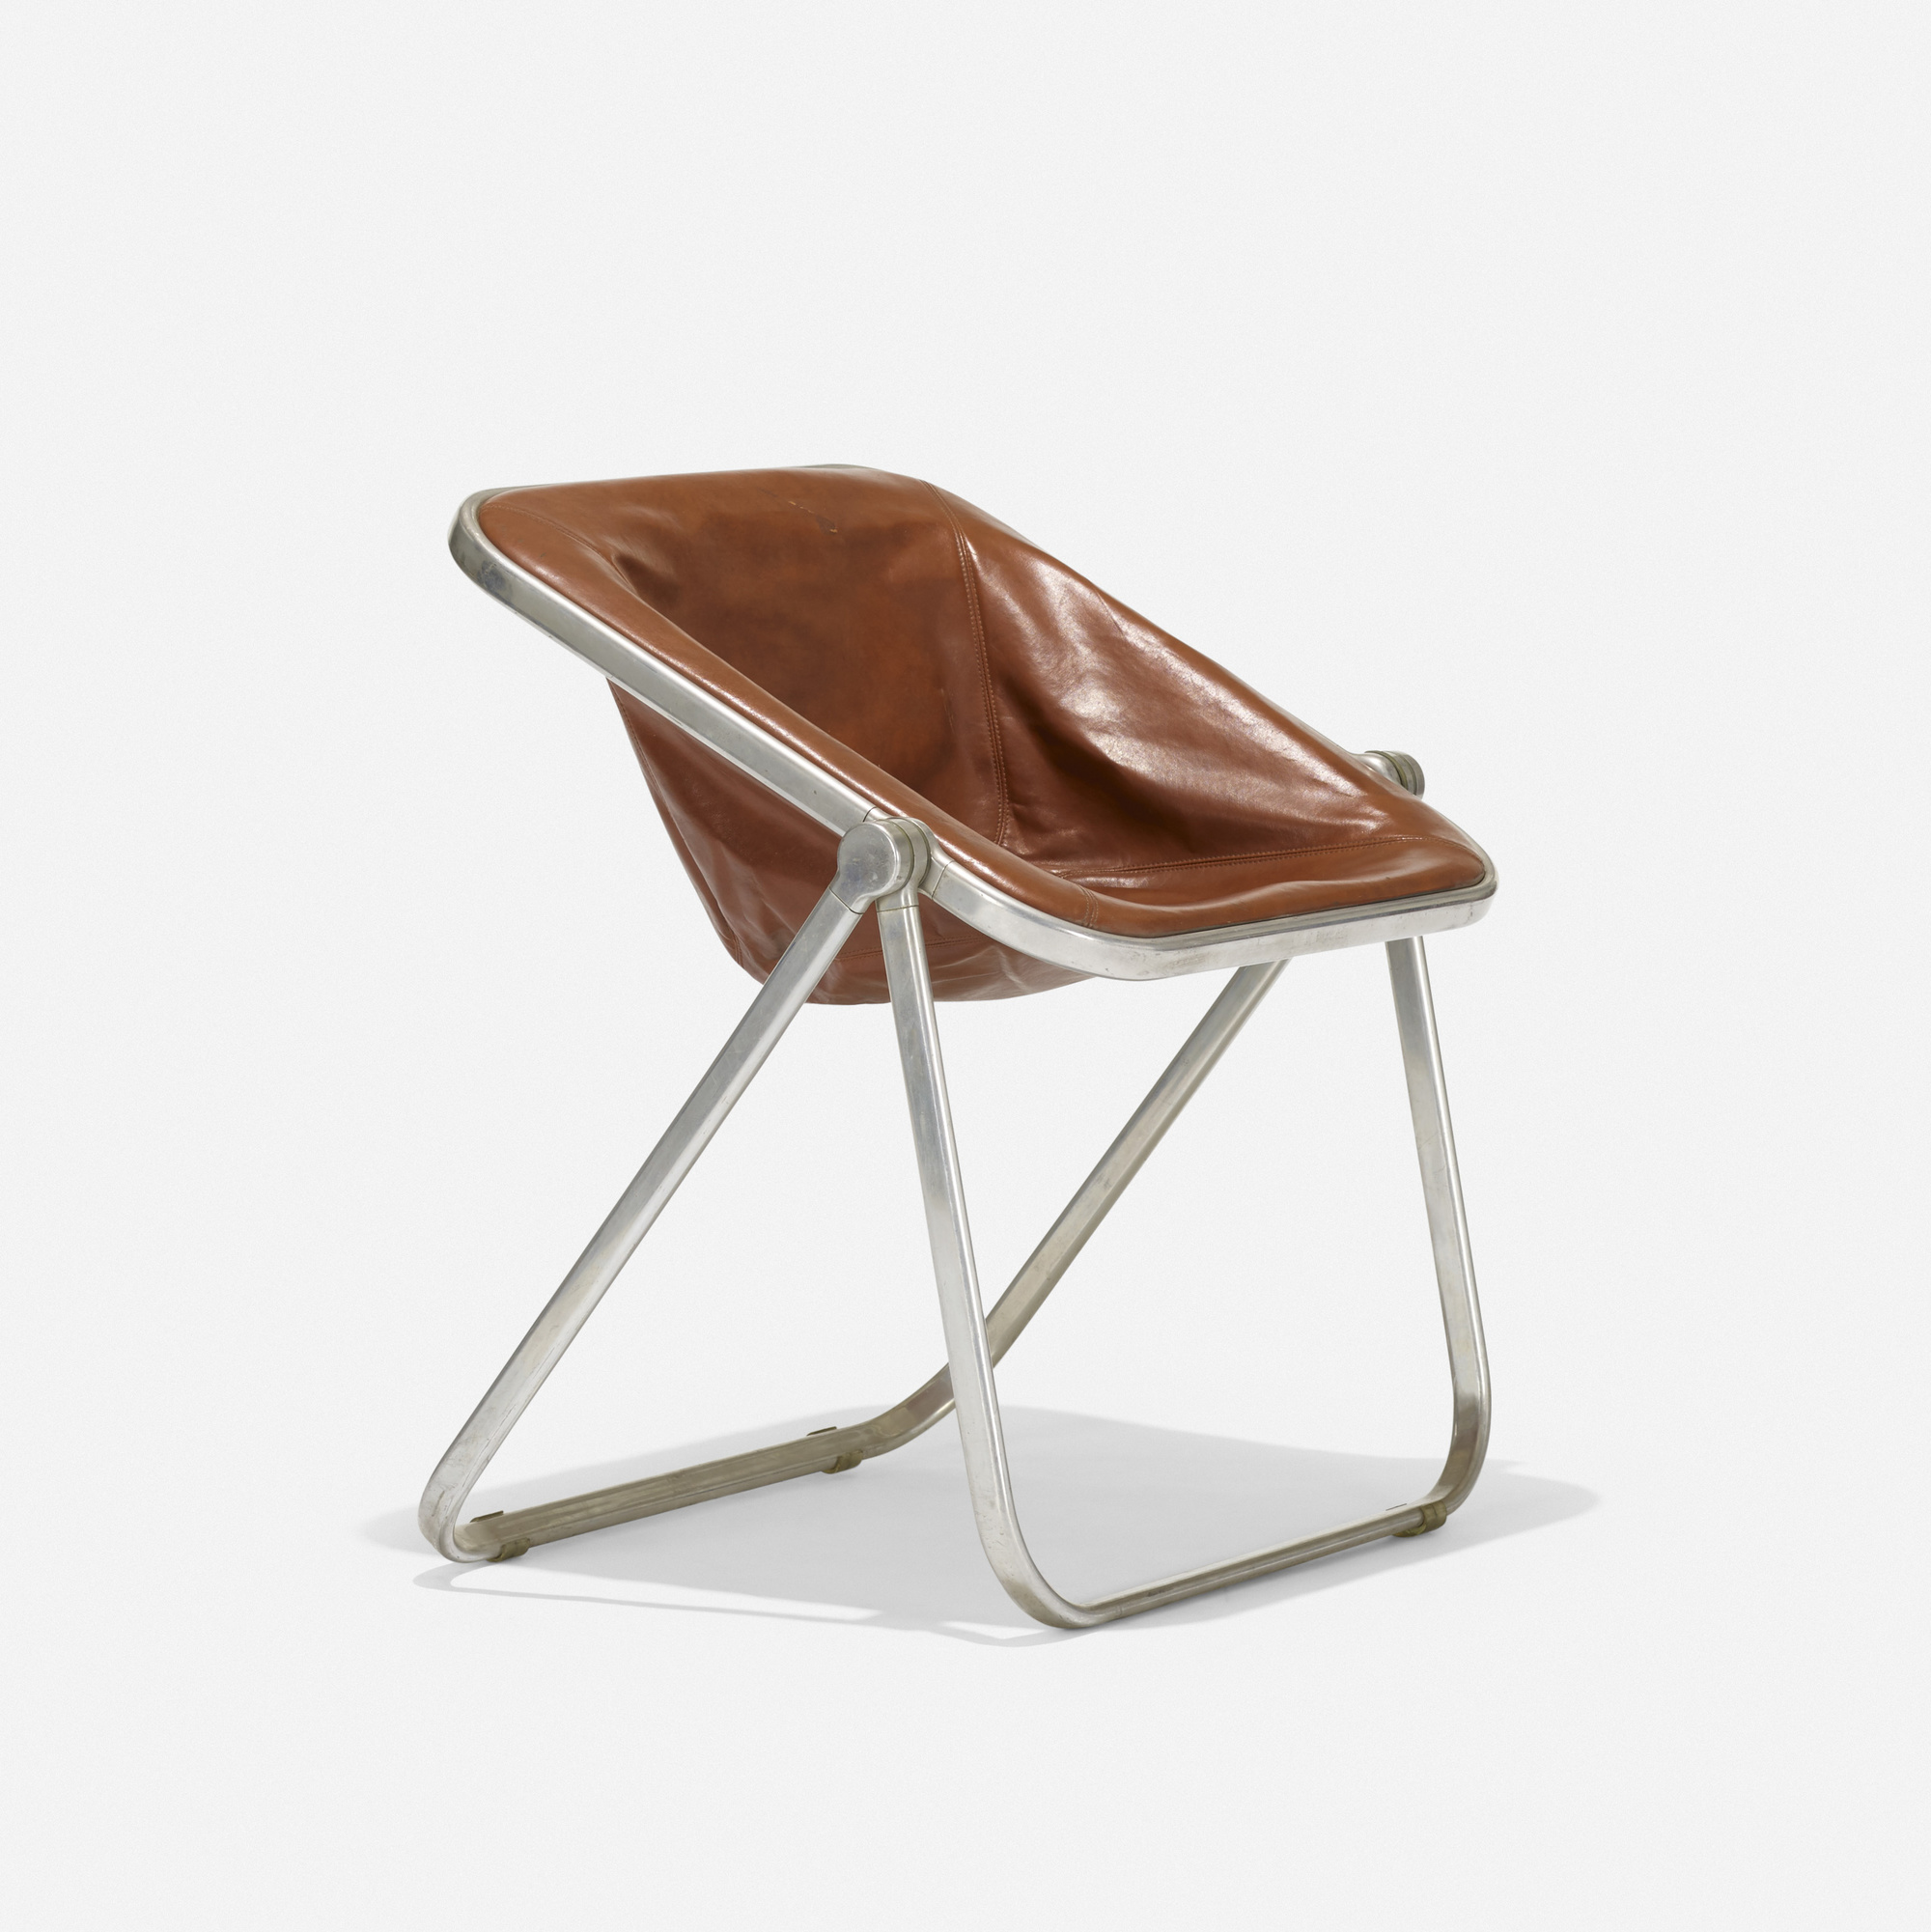 343: Giancarlo Piretti / Plona folding chair (1 of 3)